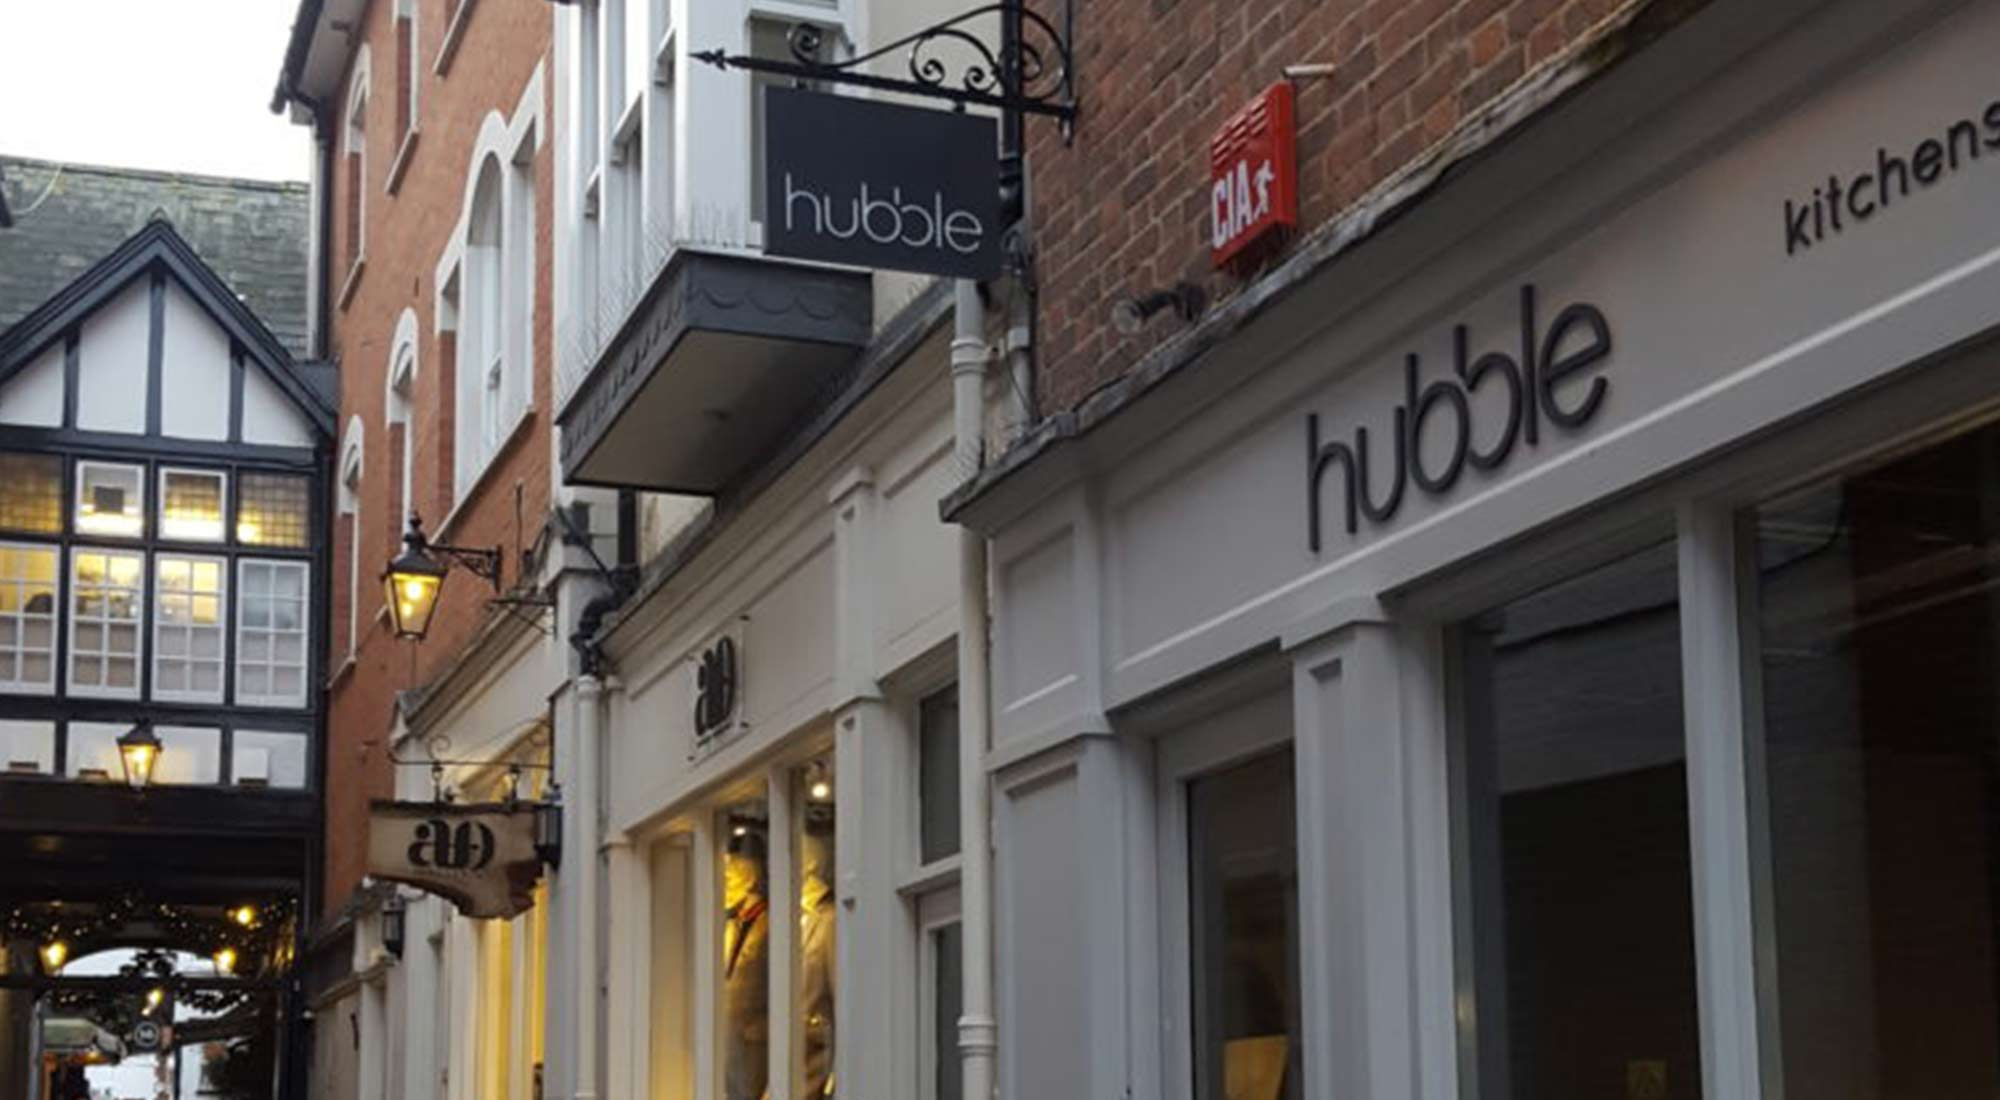 Hubble Kitchens & Interiors shop in Angle Gate, Guildford